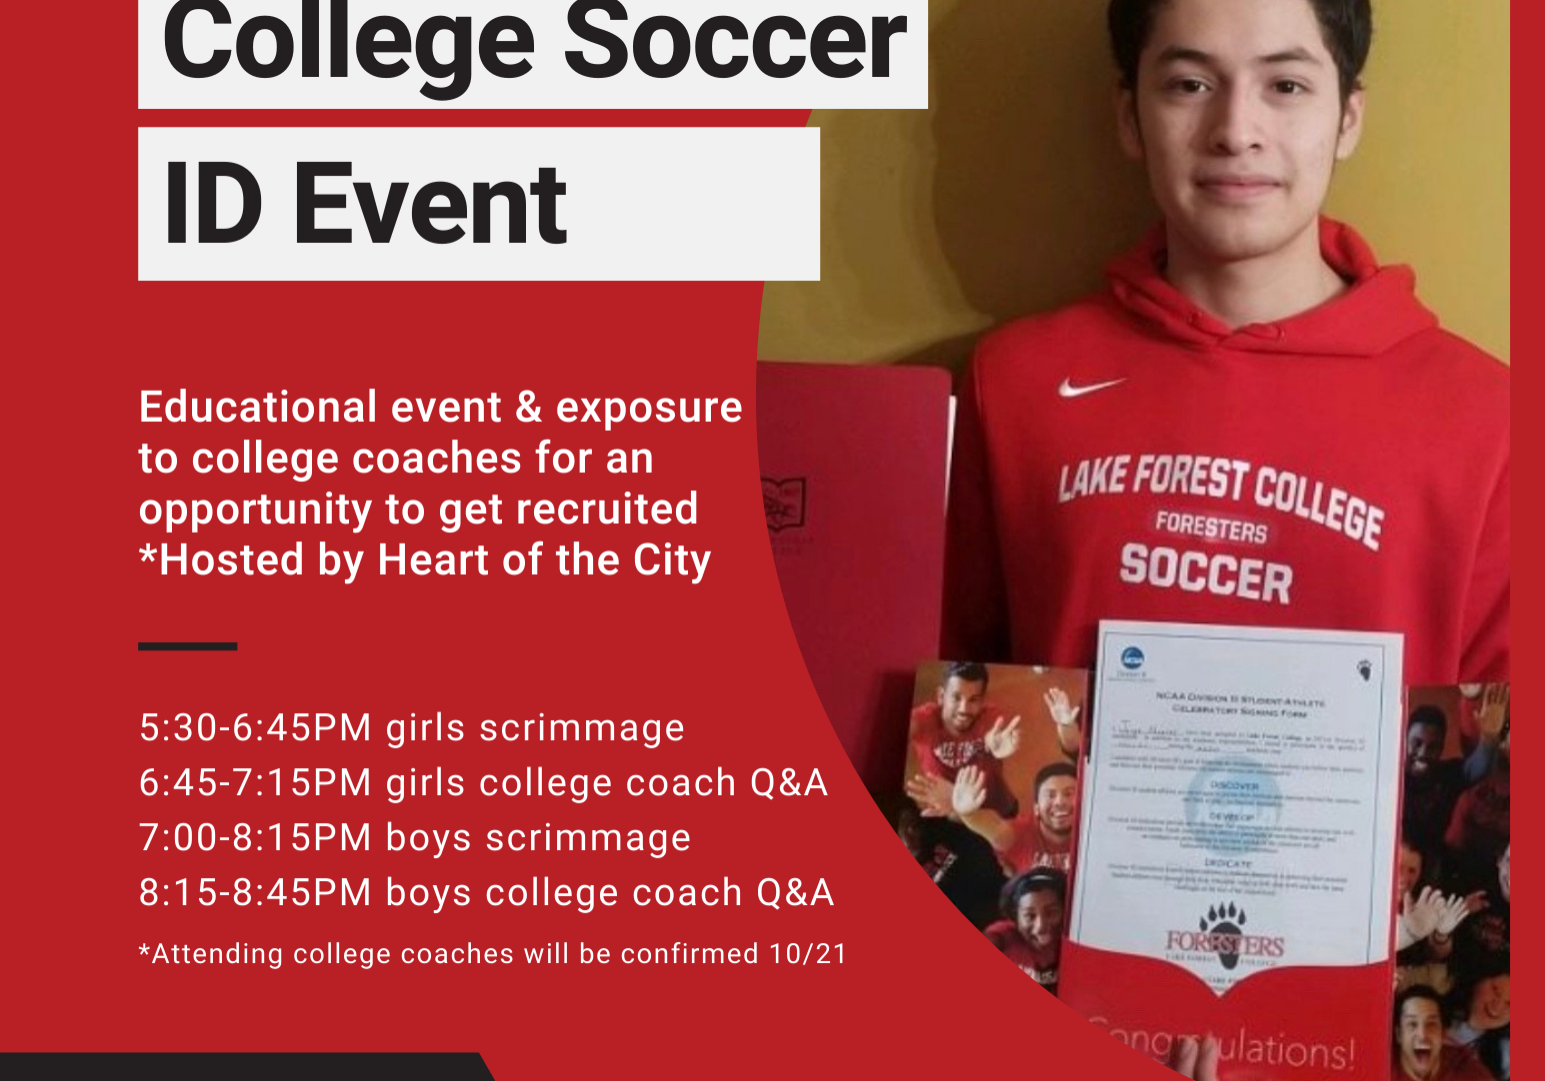 College-Soccer-ID-Event